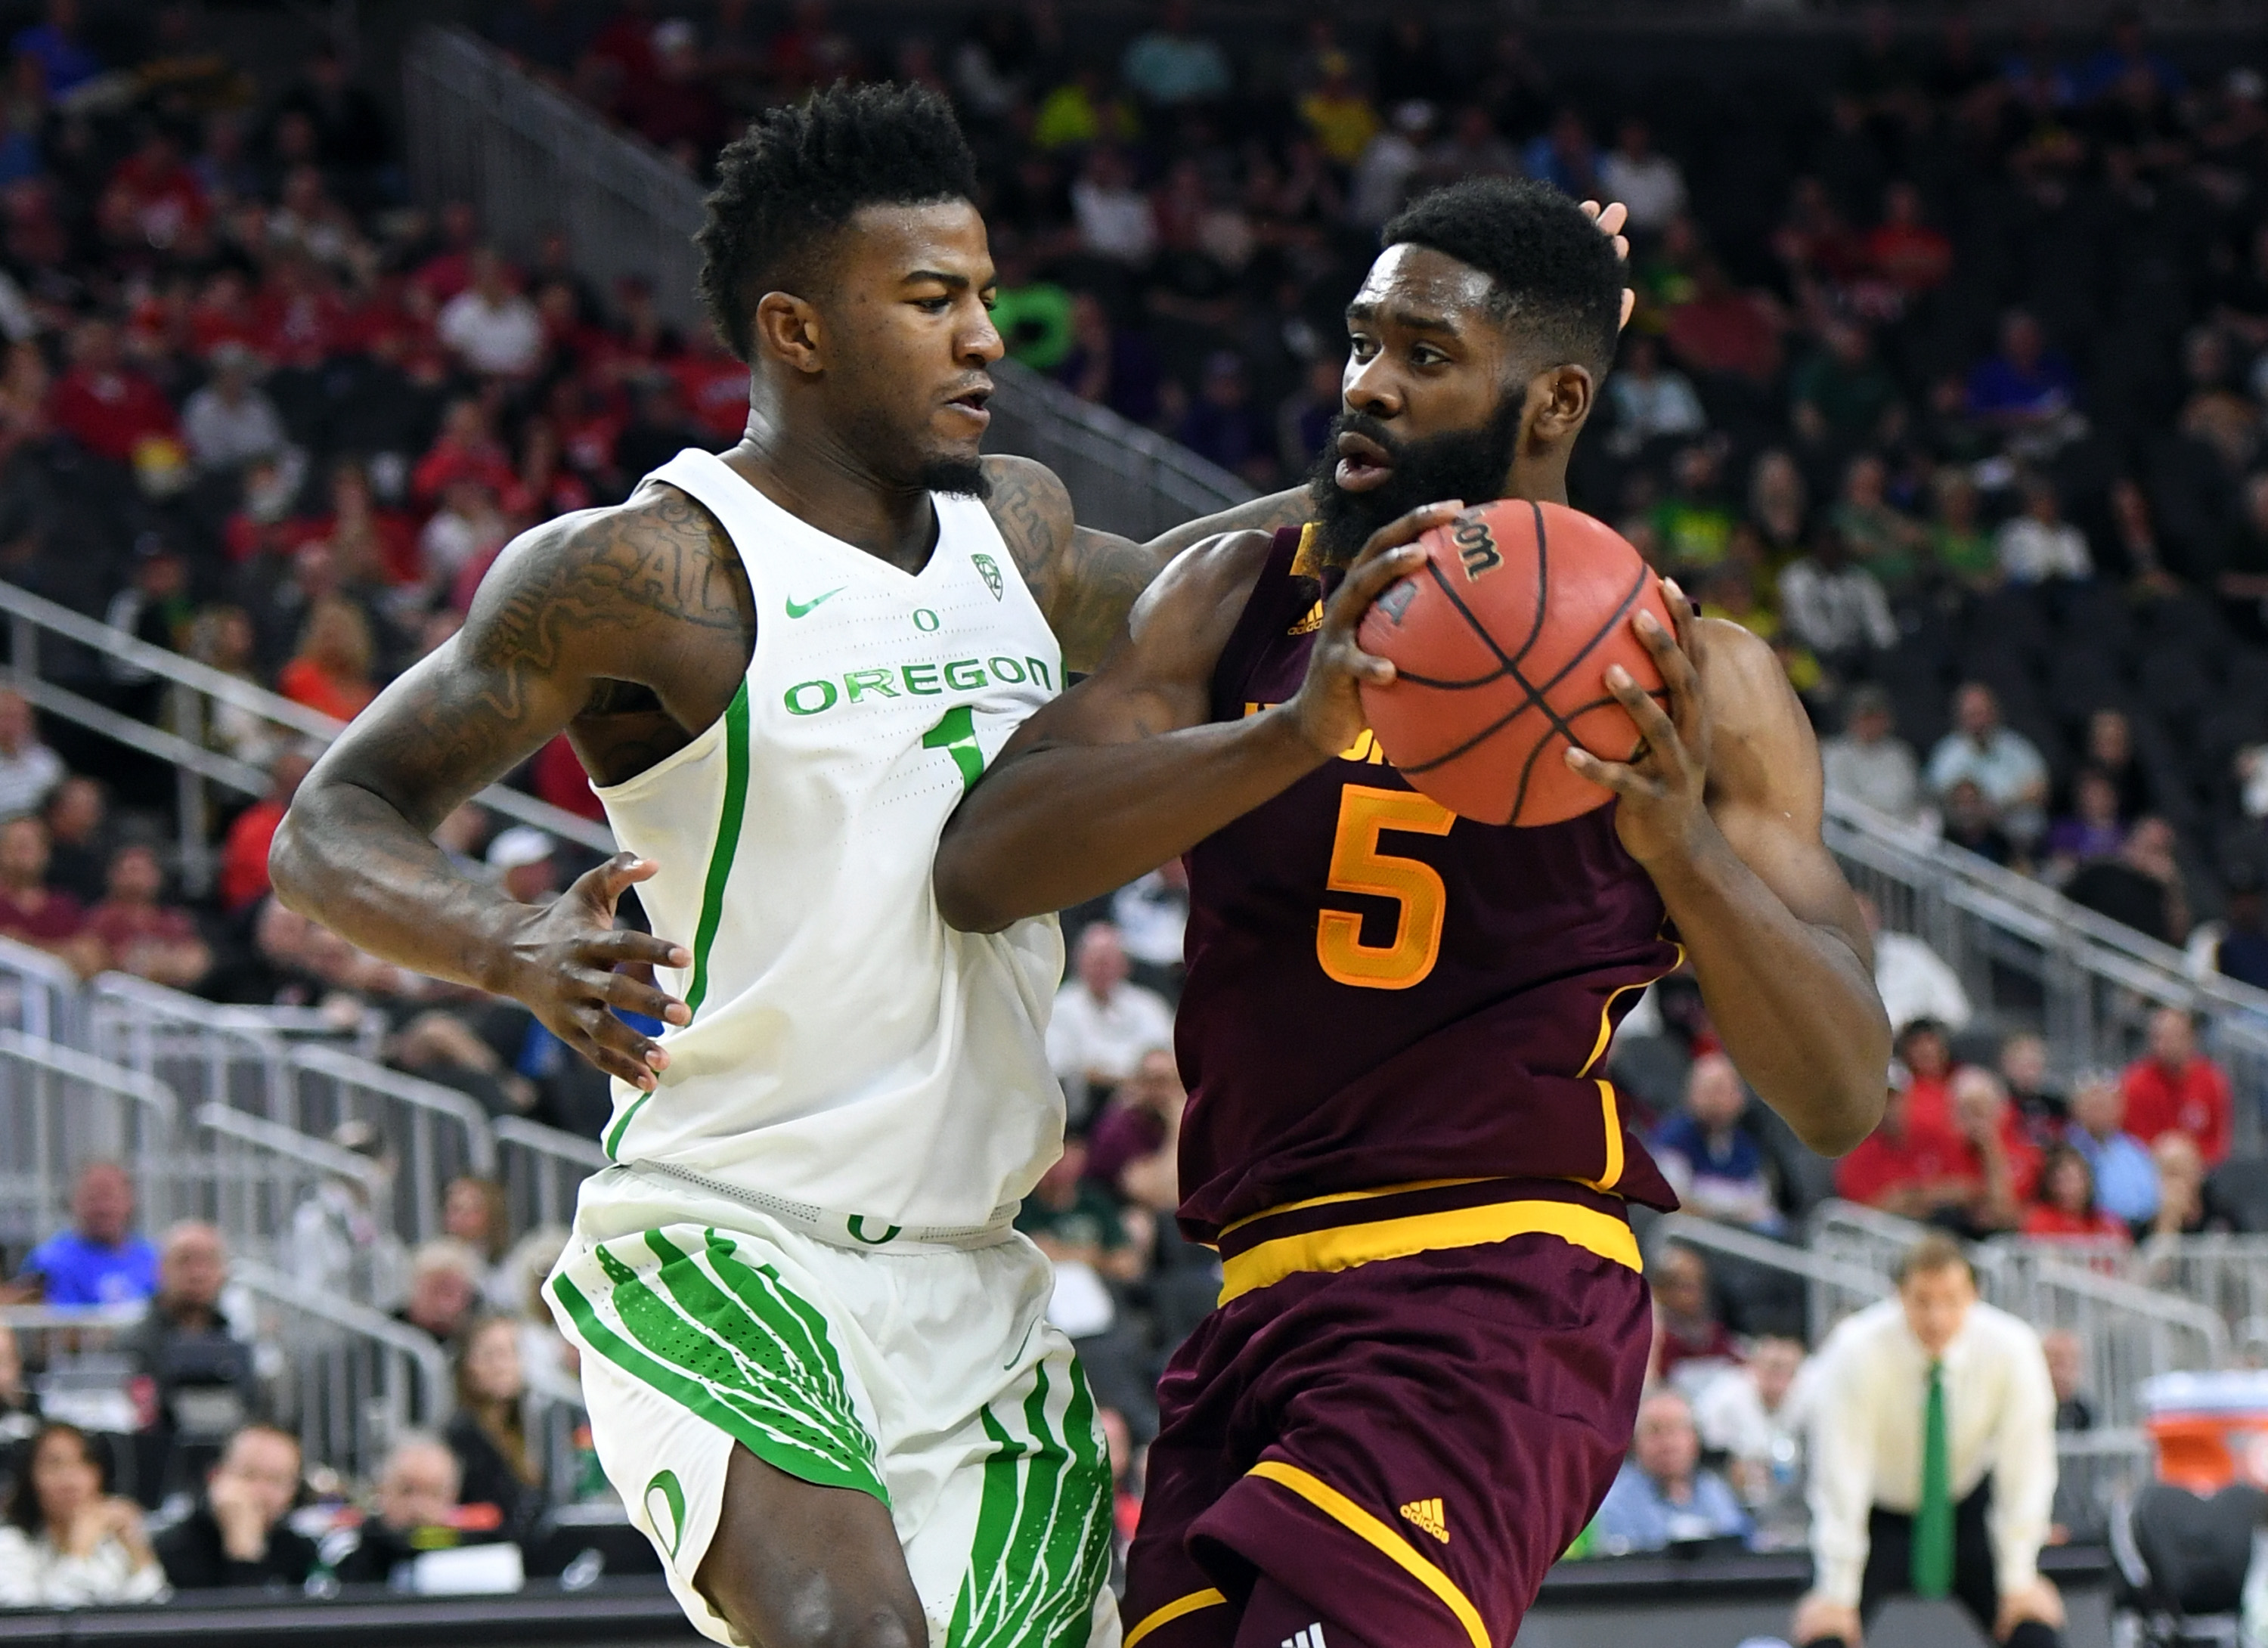 WSU men's basketball can't hold big lead, falls in Pac-12 tournament